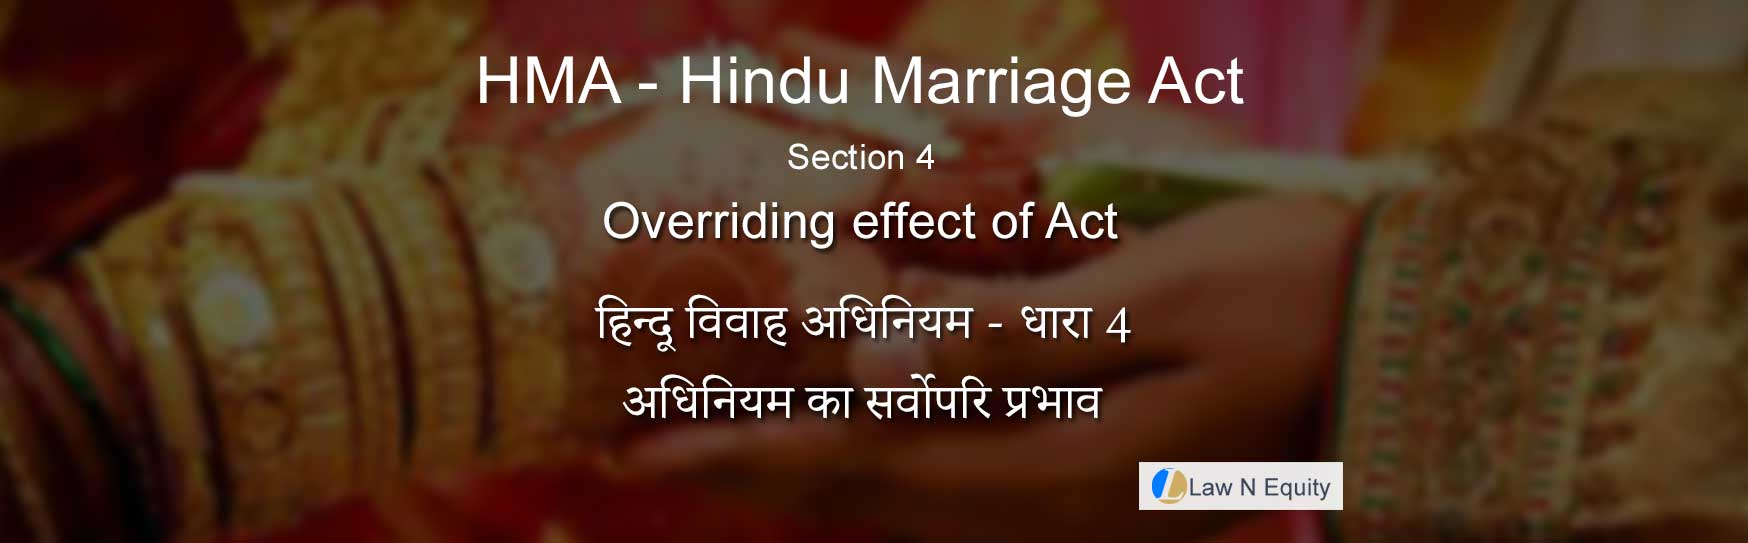 Hindu Marriage Act(HMA) Section 4